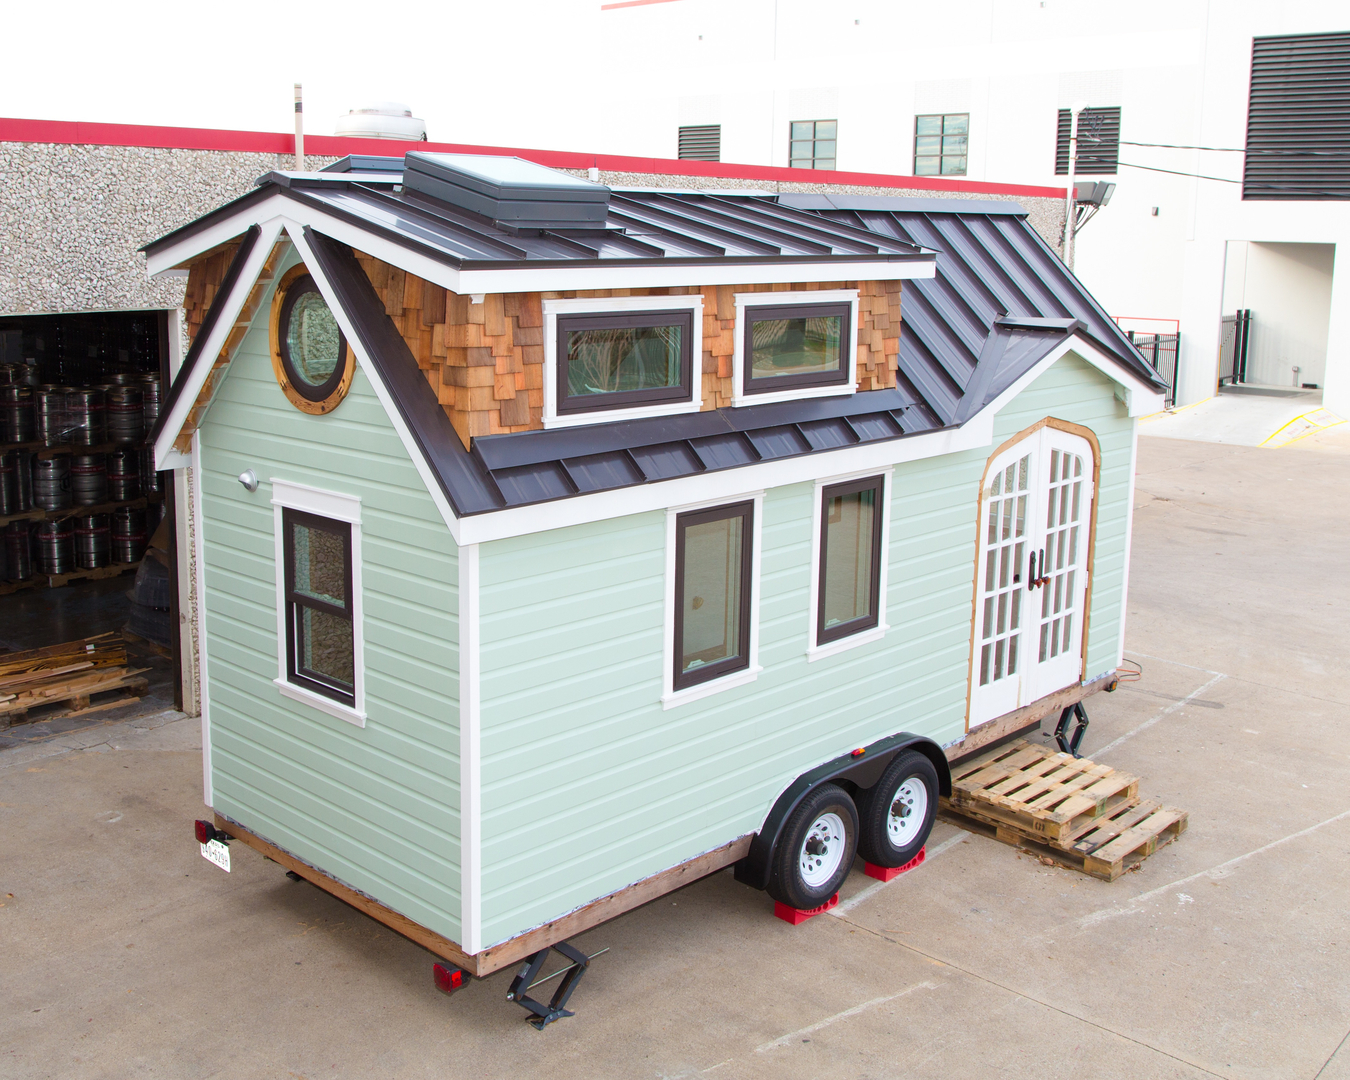 Tiny Home Designs: TINY HOUSE TOWN: The Best Little House In Texas